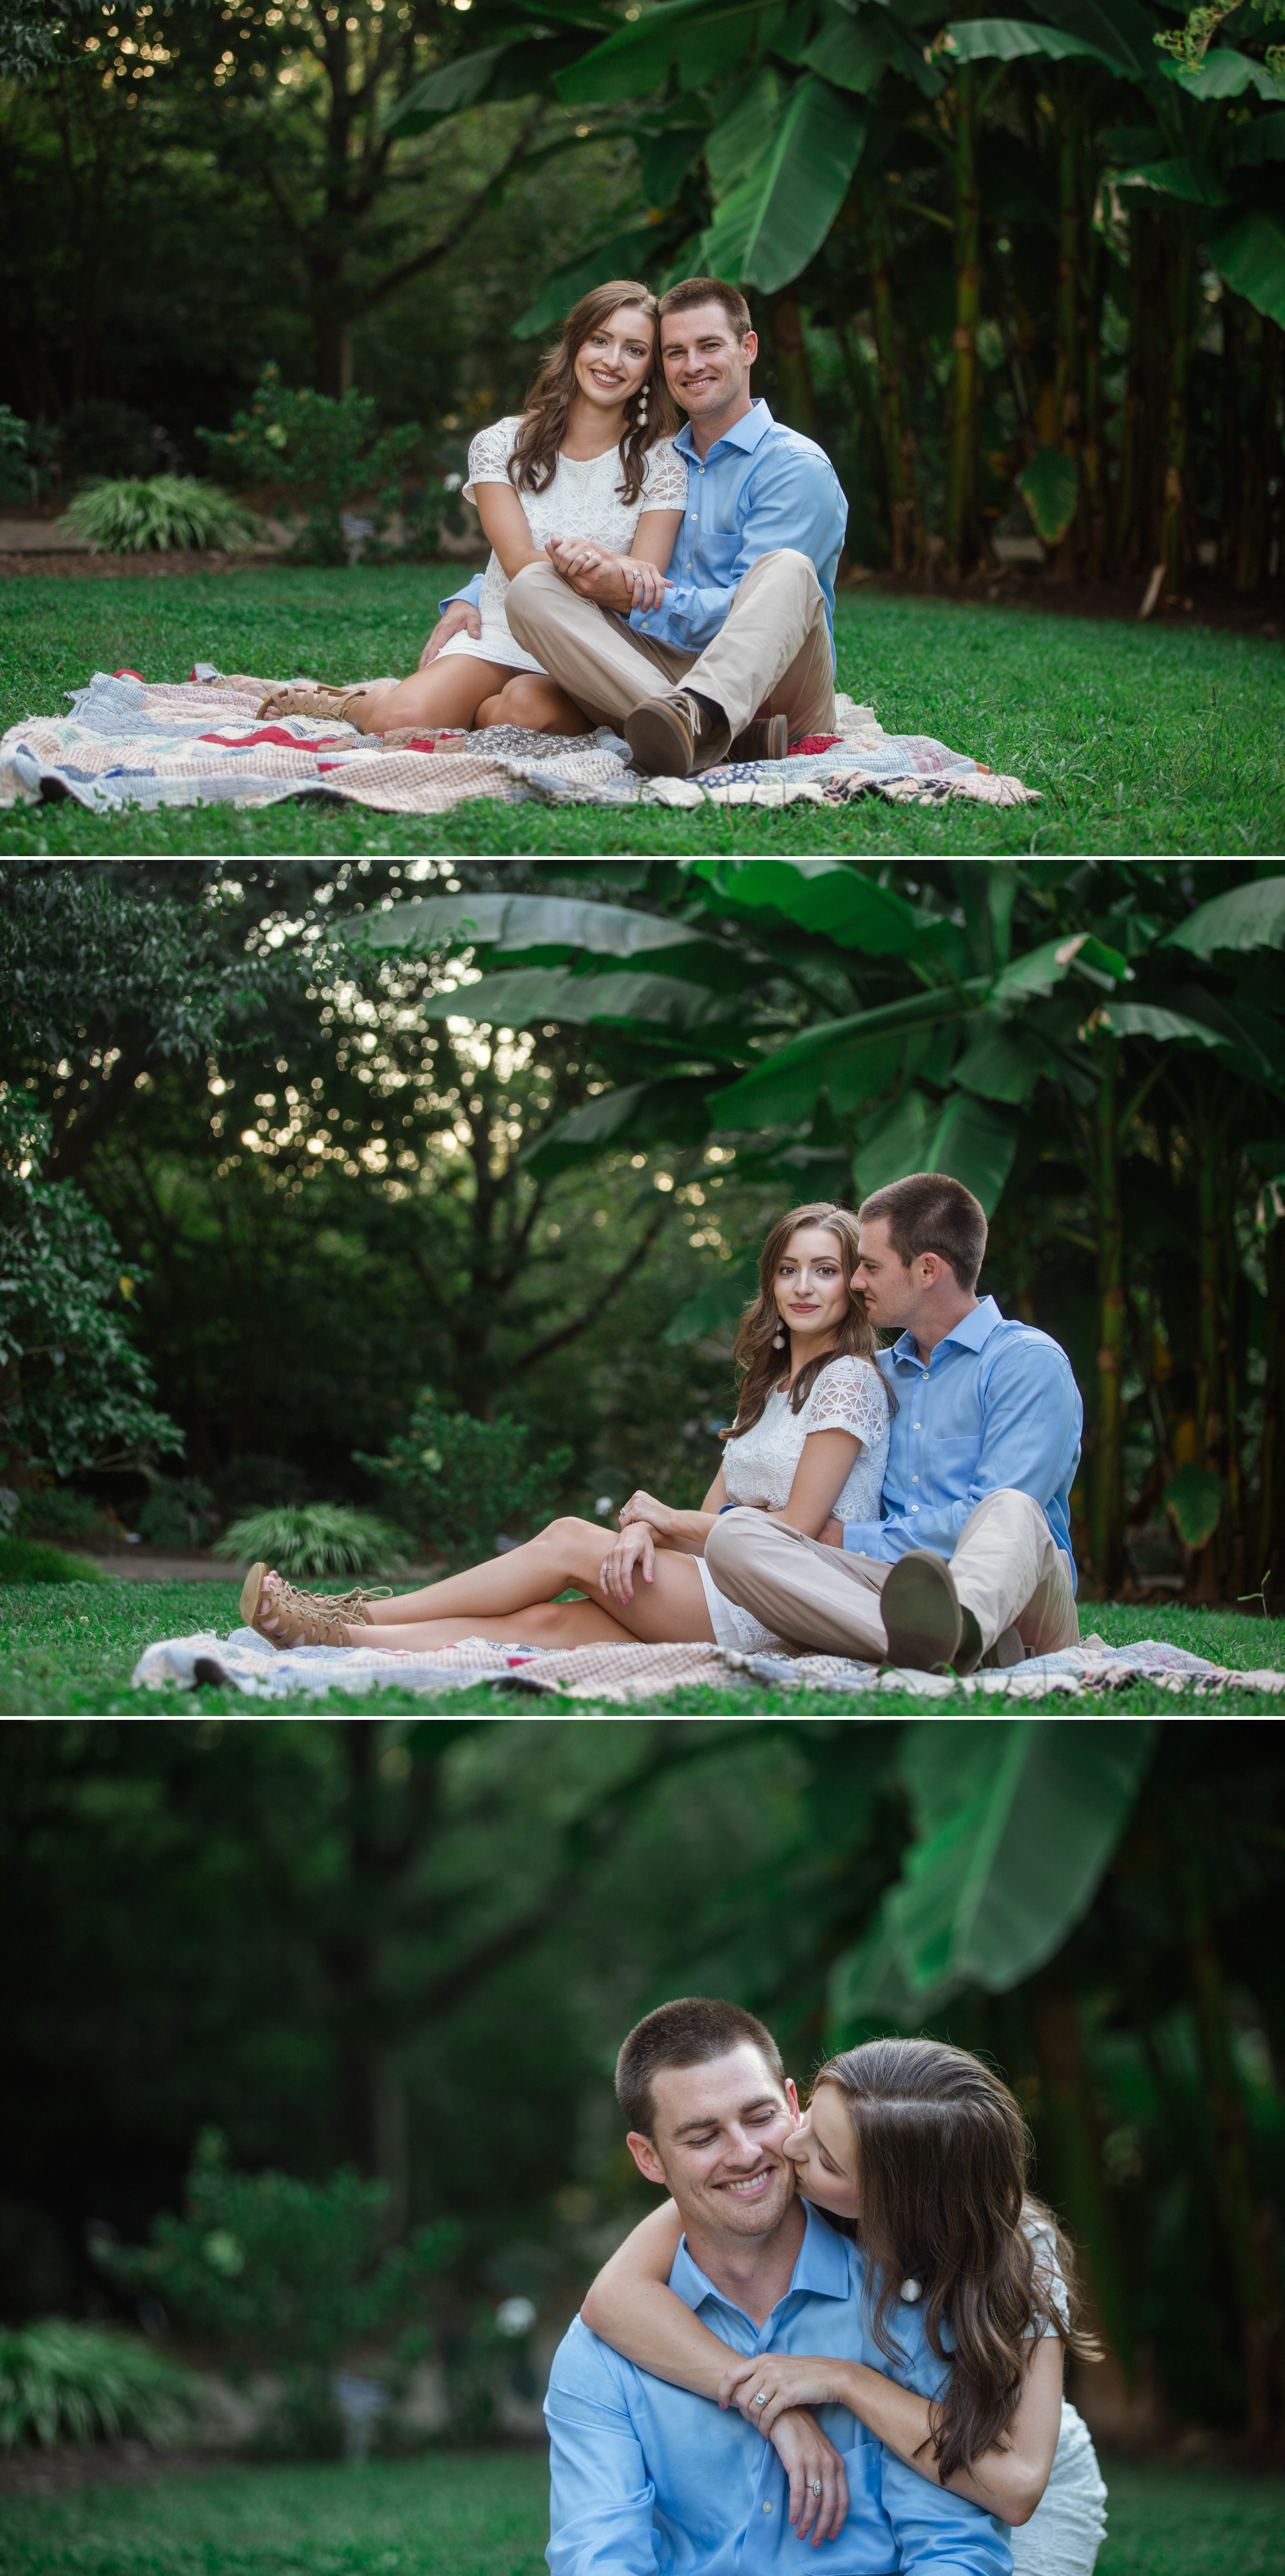 Paige + Tyler - Engagement Photography Session at the JC Raulston Arboretum - Raleigh Wedding Photographer 7.jpg